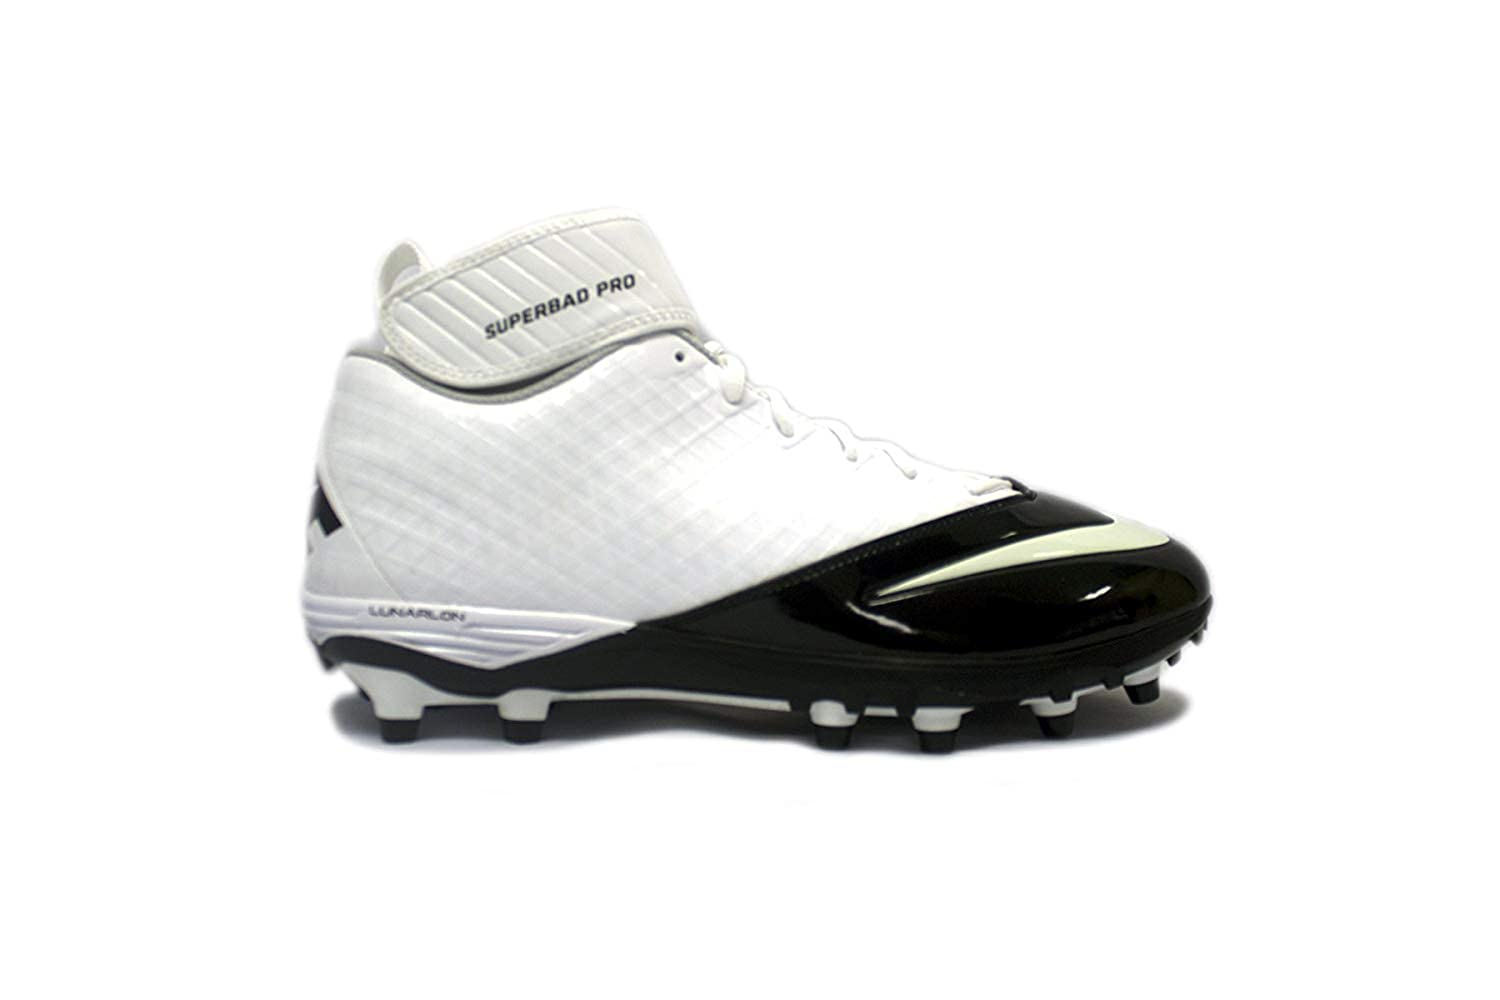 promo code bcbf8 aa2ad Nike Lunar Super Bad Pro TD Men s Football Cleats  Amazon.co.uk  Shoes    Bags